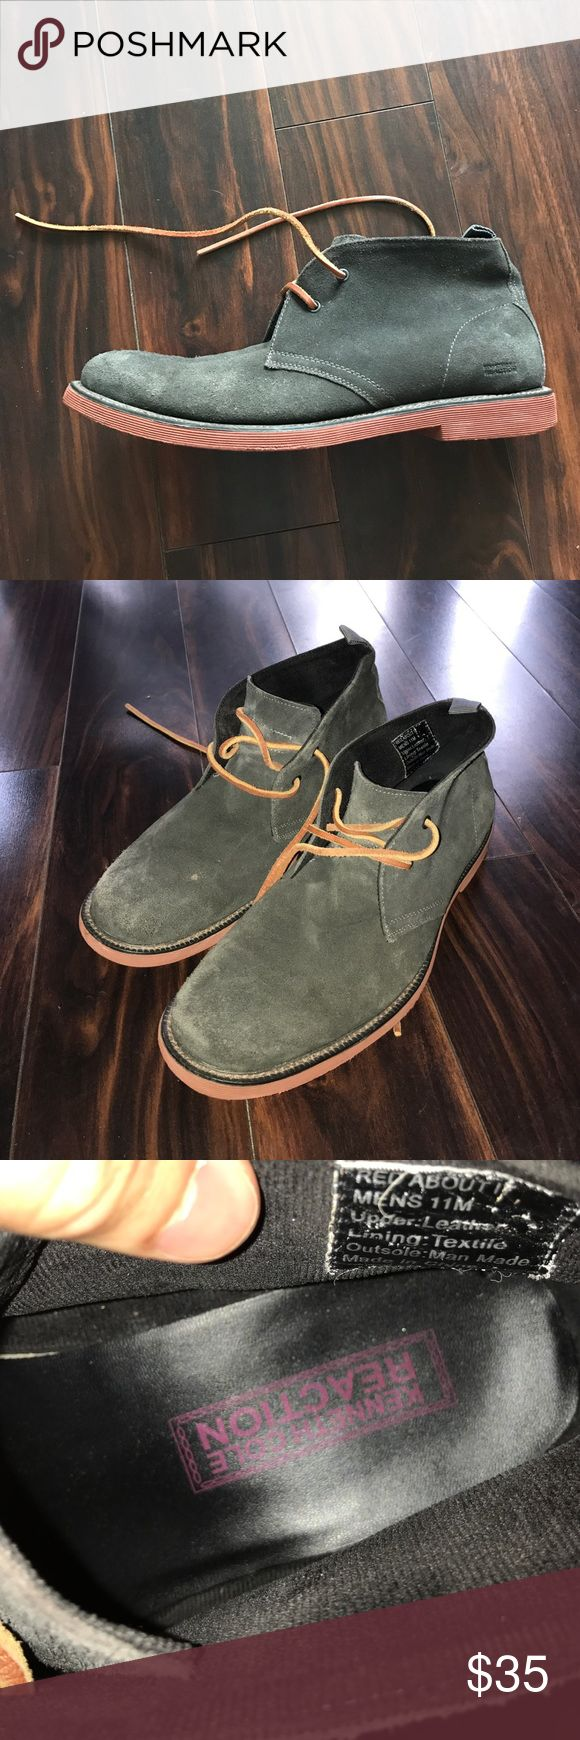 Men's Kenneth Cole reaction suede chukka Boots Lightly worn suede chukka boots. Size 11USM. Grey suede and terra-cotta sole and brown leather laces. Price is negotiable. Kenneth Cole Reaction Shoes Chukka Boots